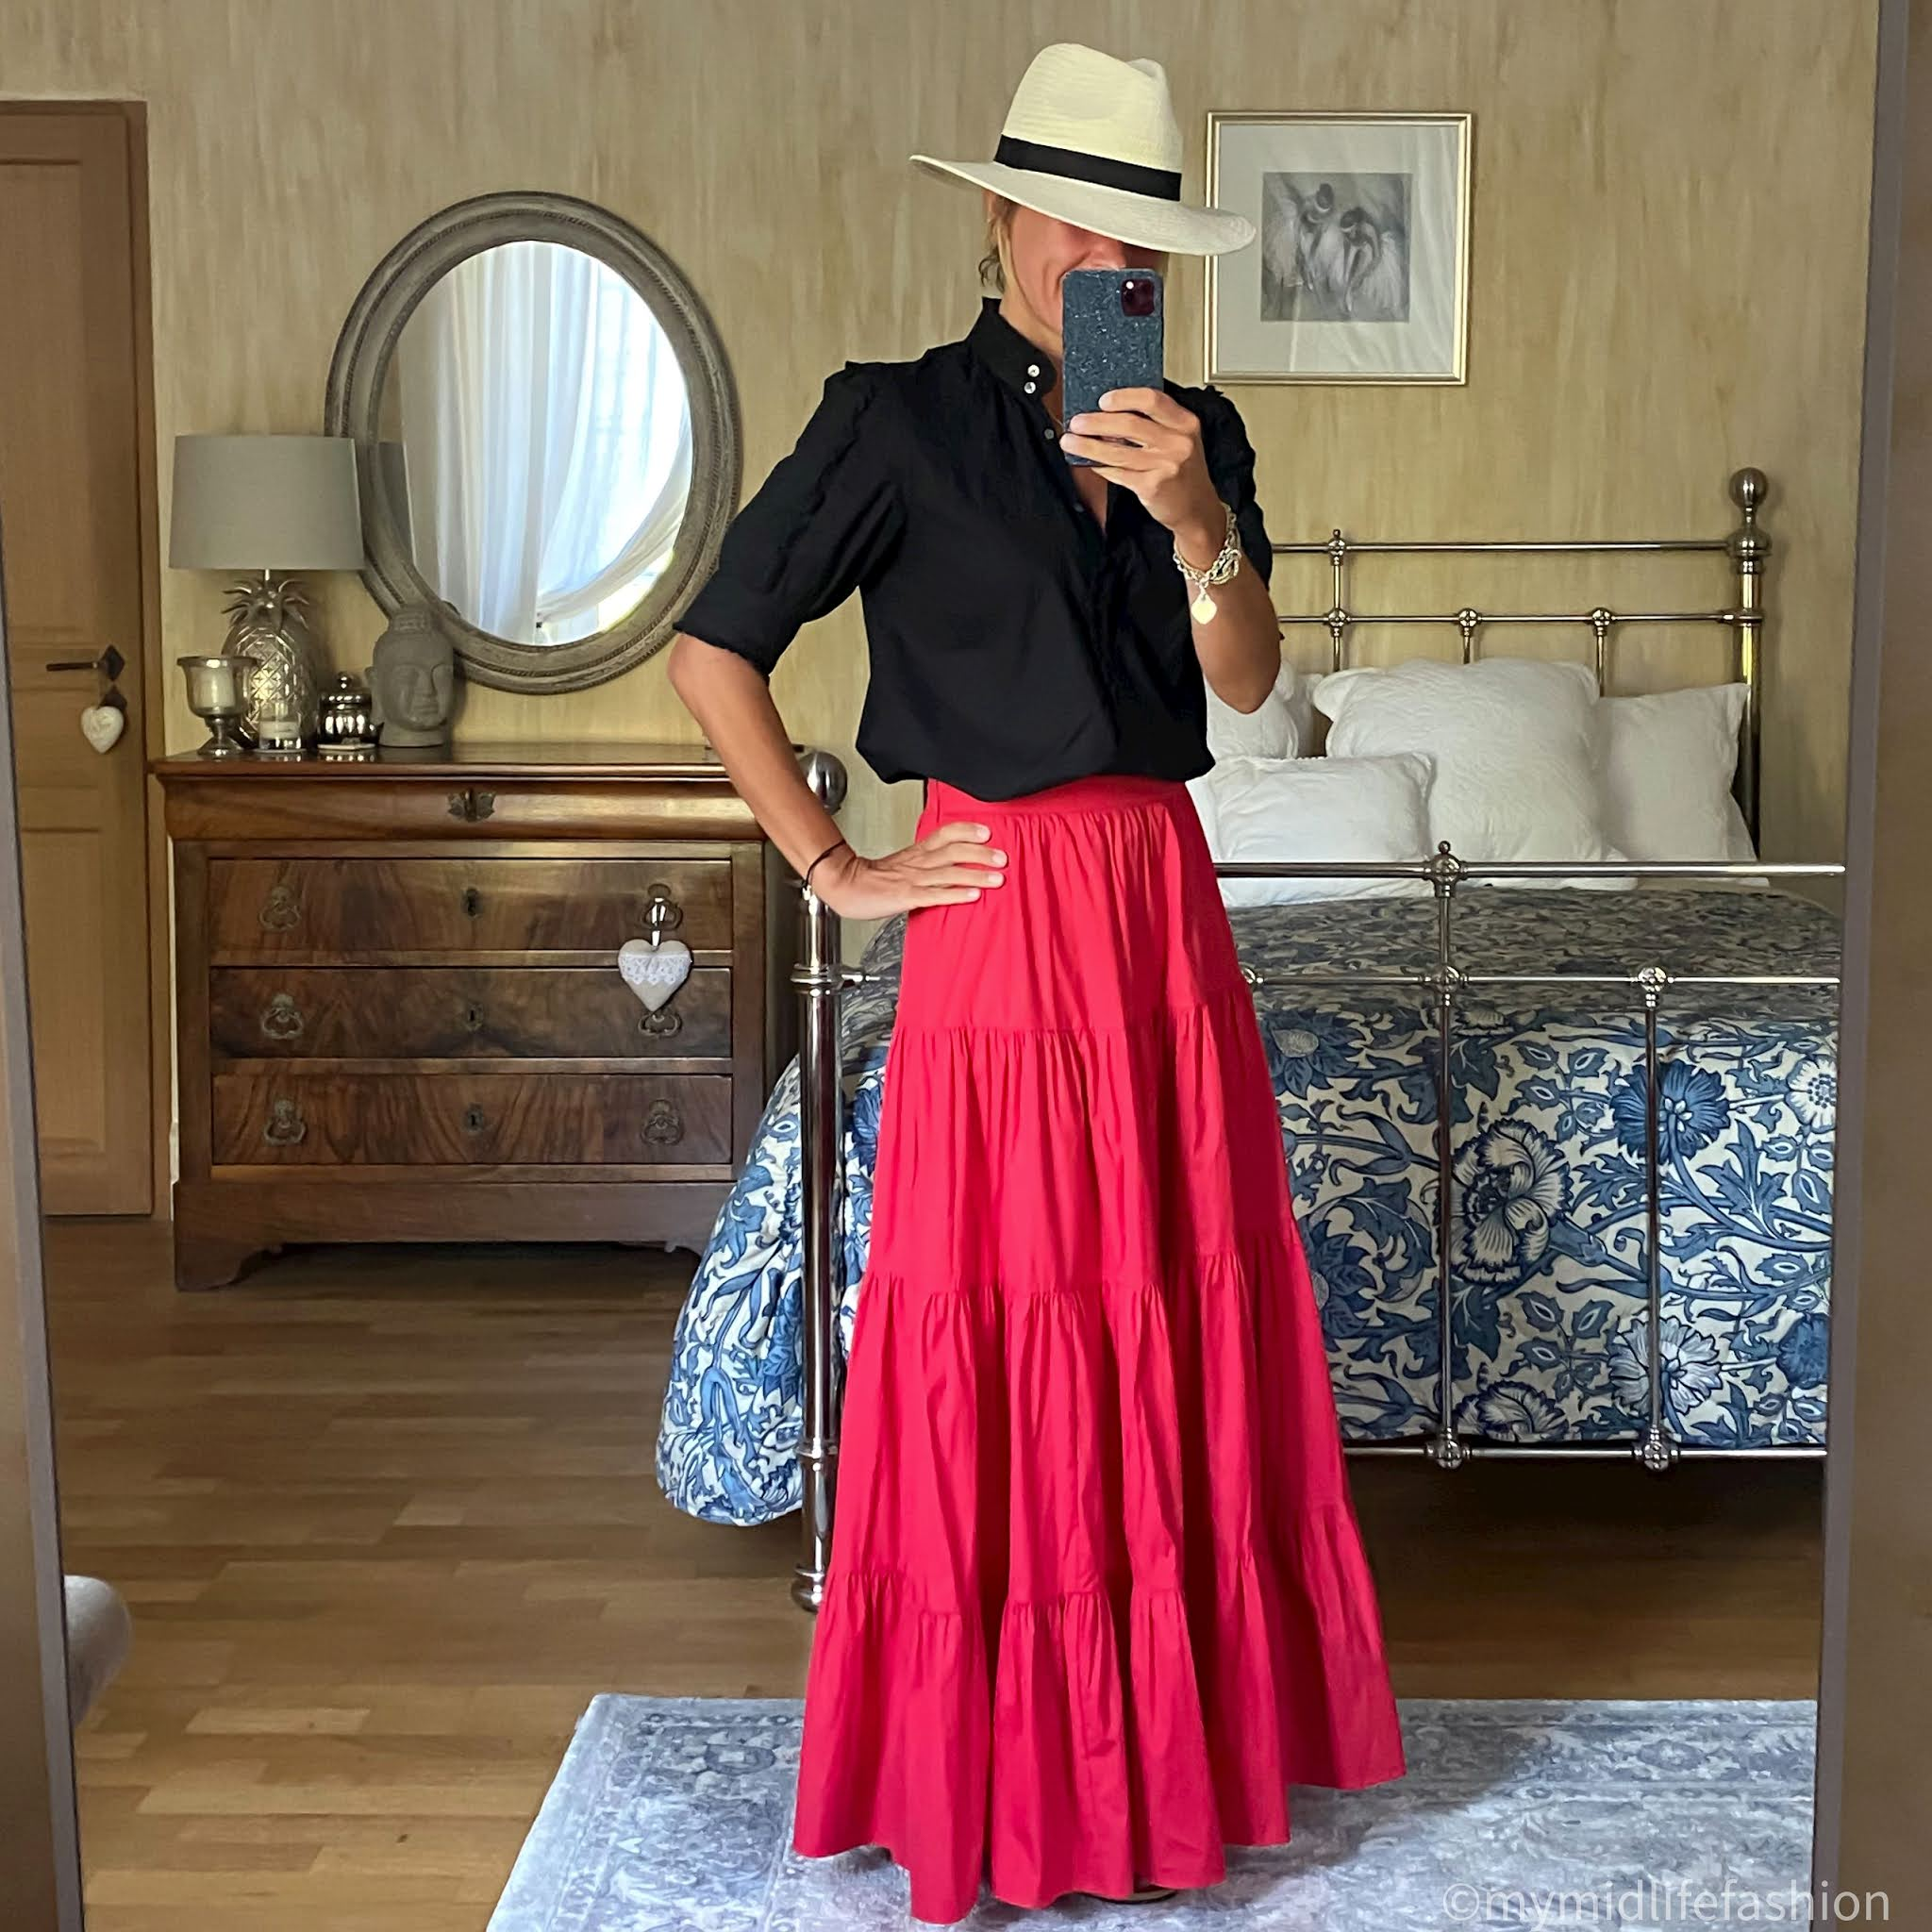 my midlife fashion, zara Panama hat, j crew ruffle blouse, mango tiered maxi skirt, havaianas slim fit gold metallic flip flops